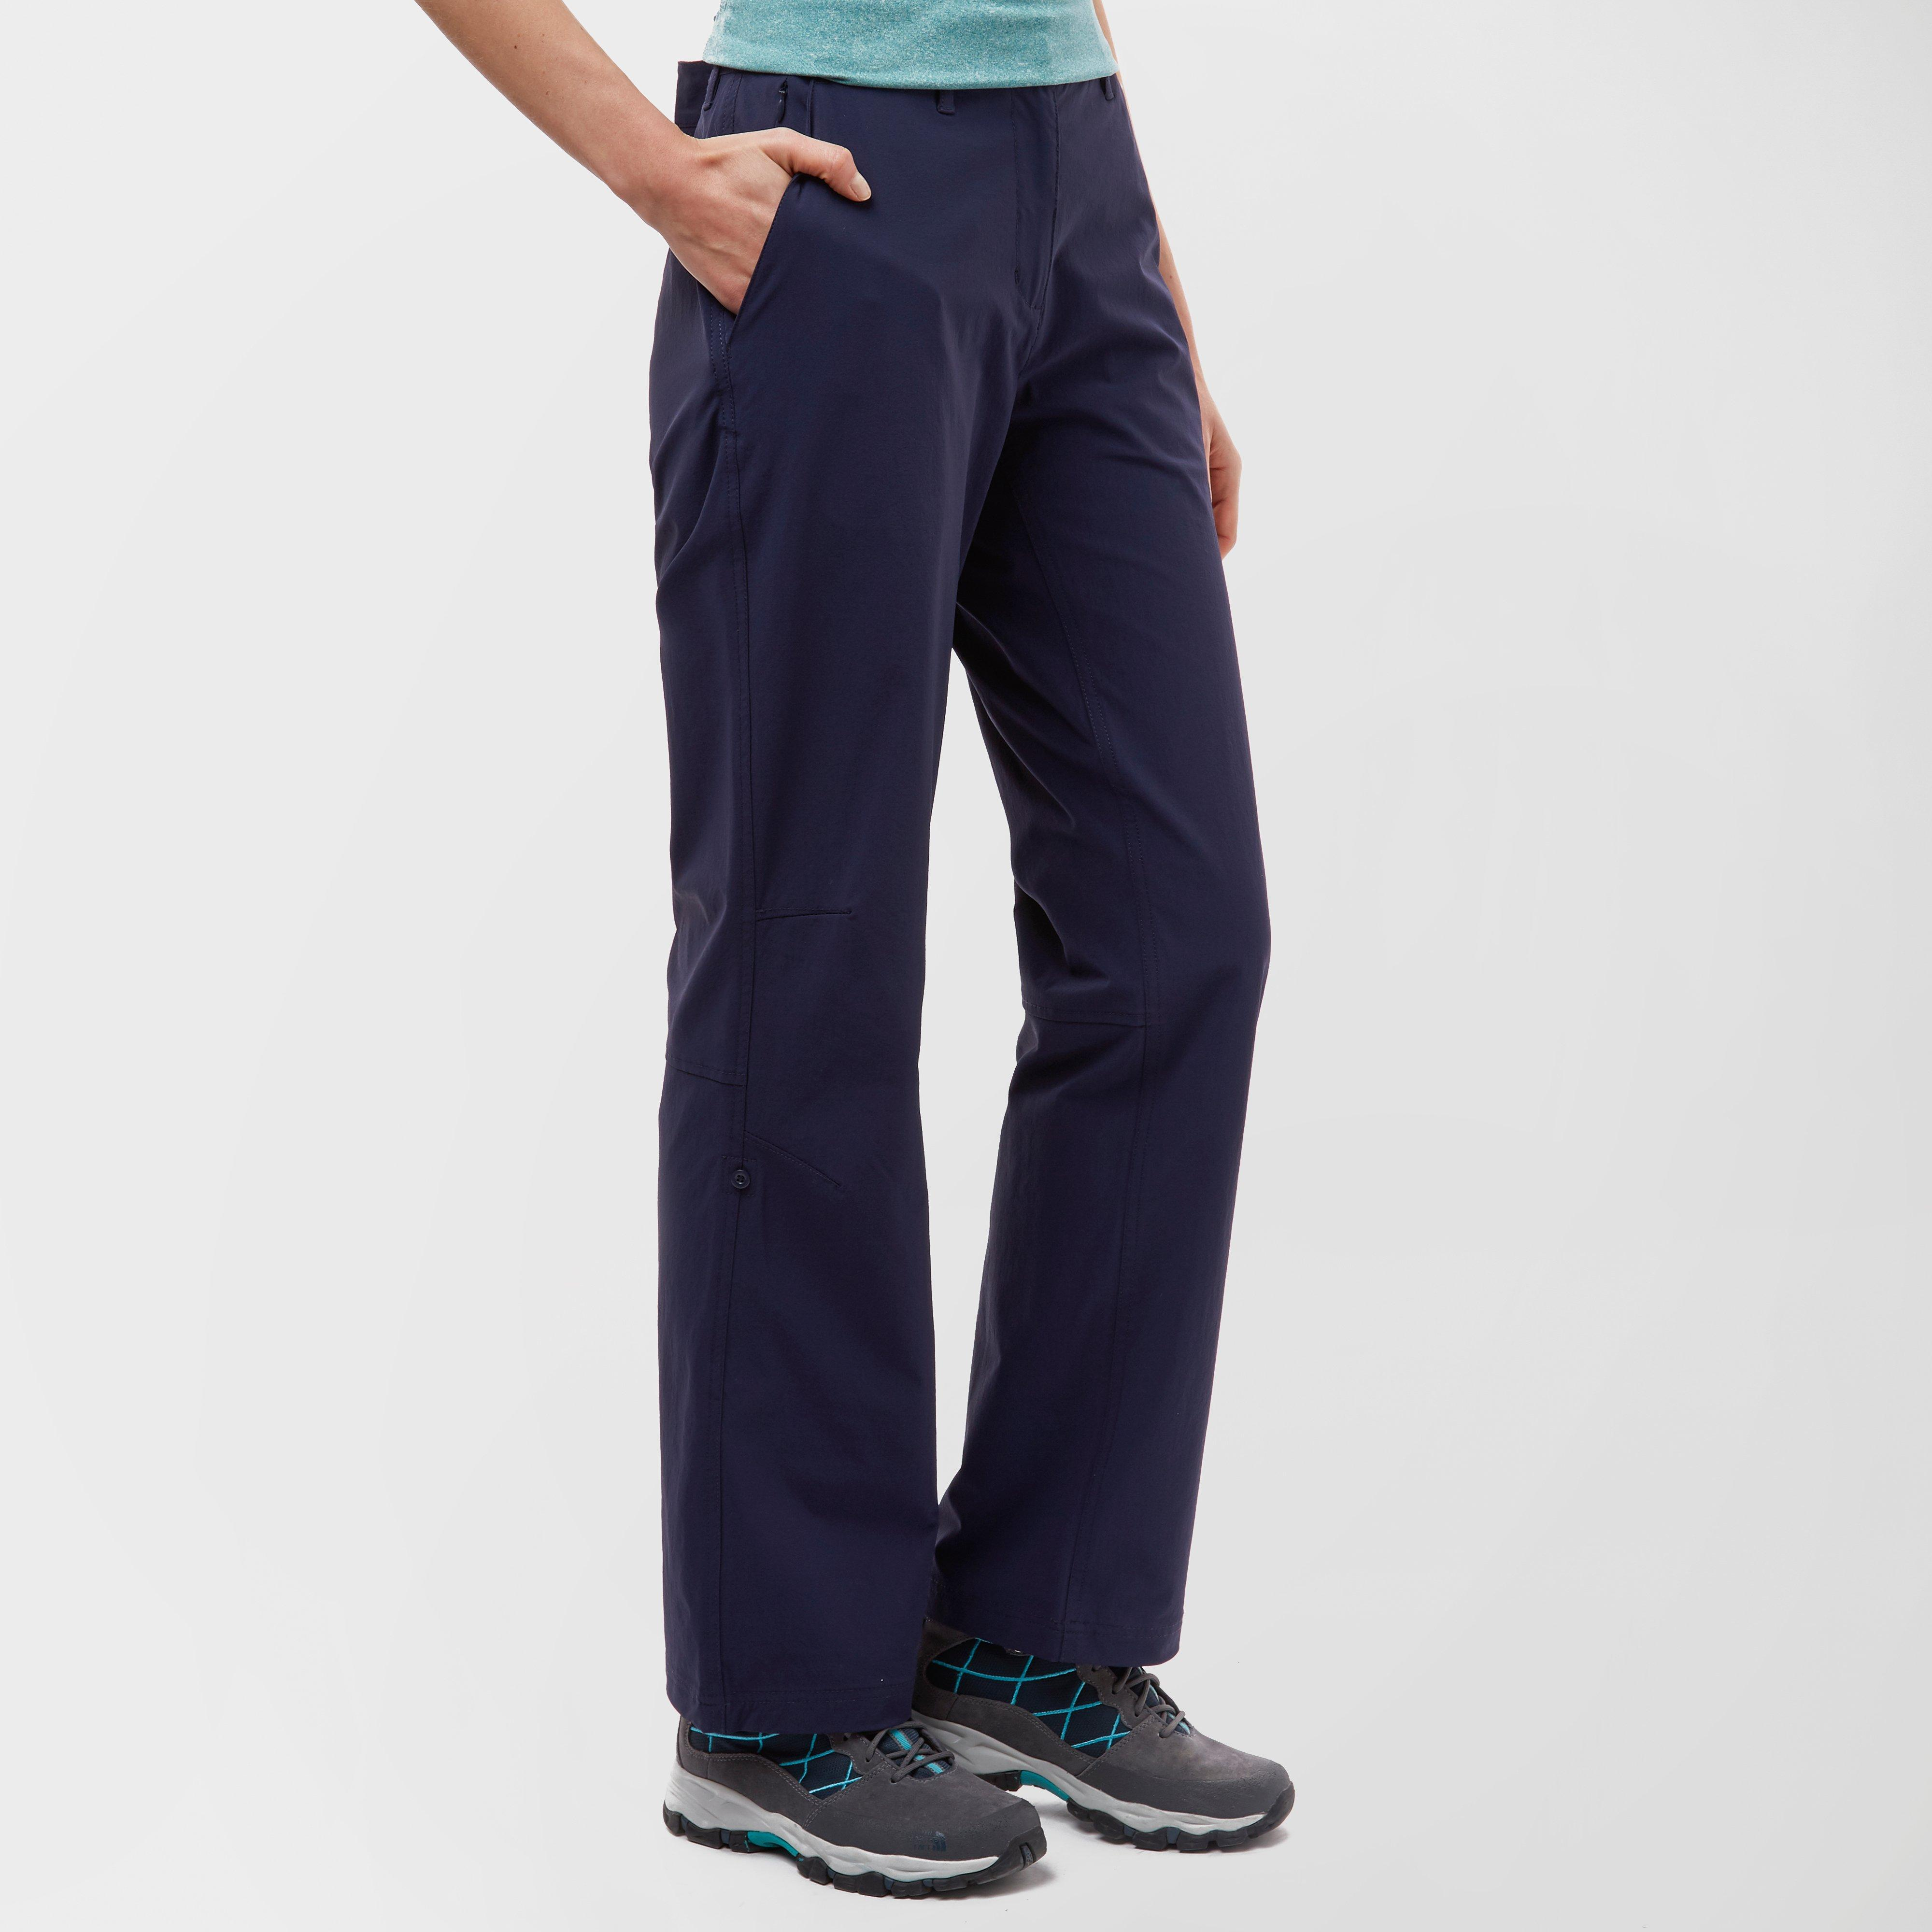 Peter Storm Peter Storm womens Stretch Roll-Up Trousers - Navy, Navy